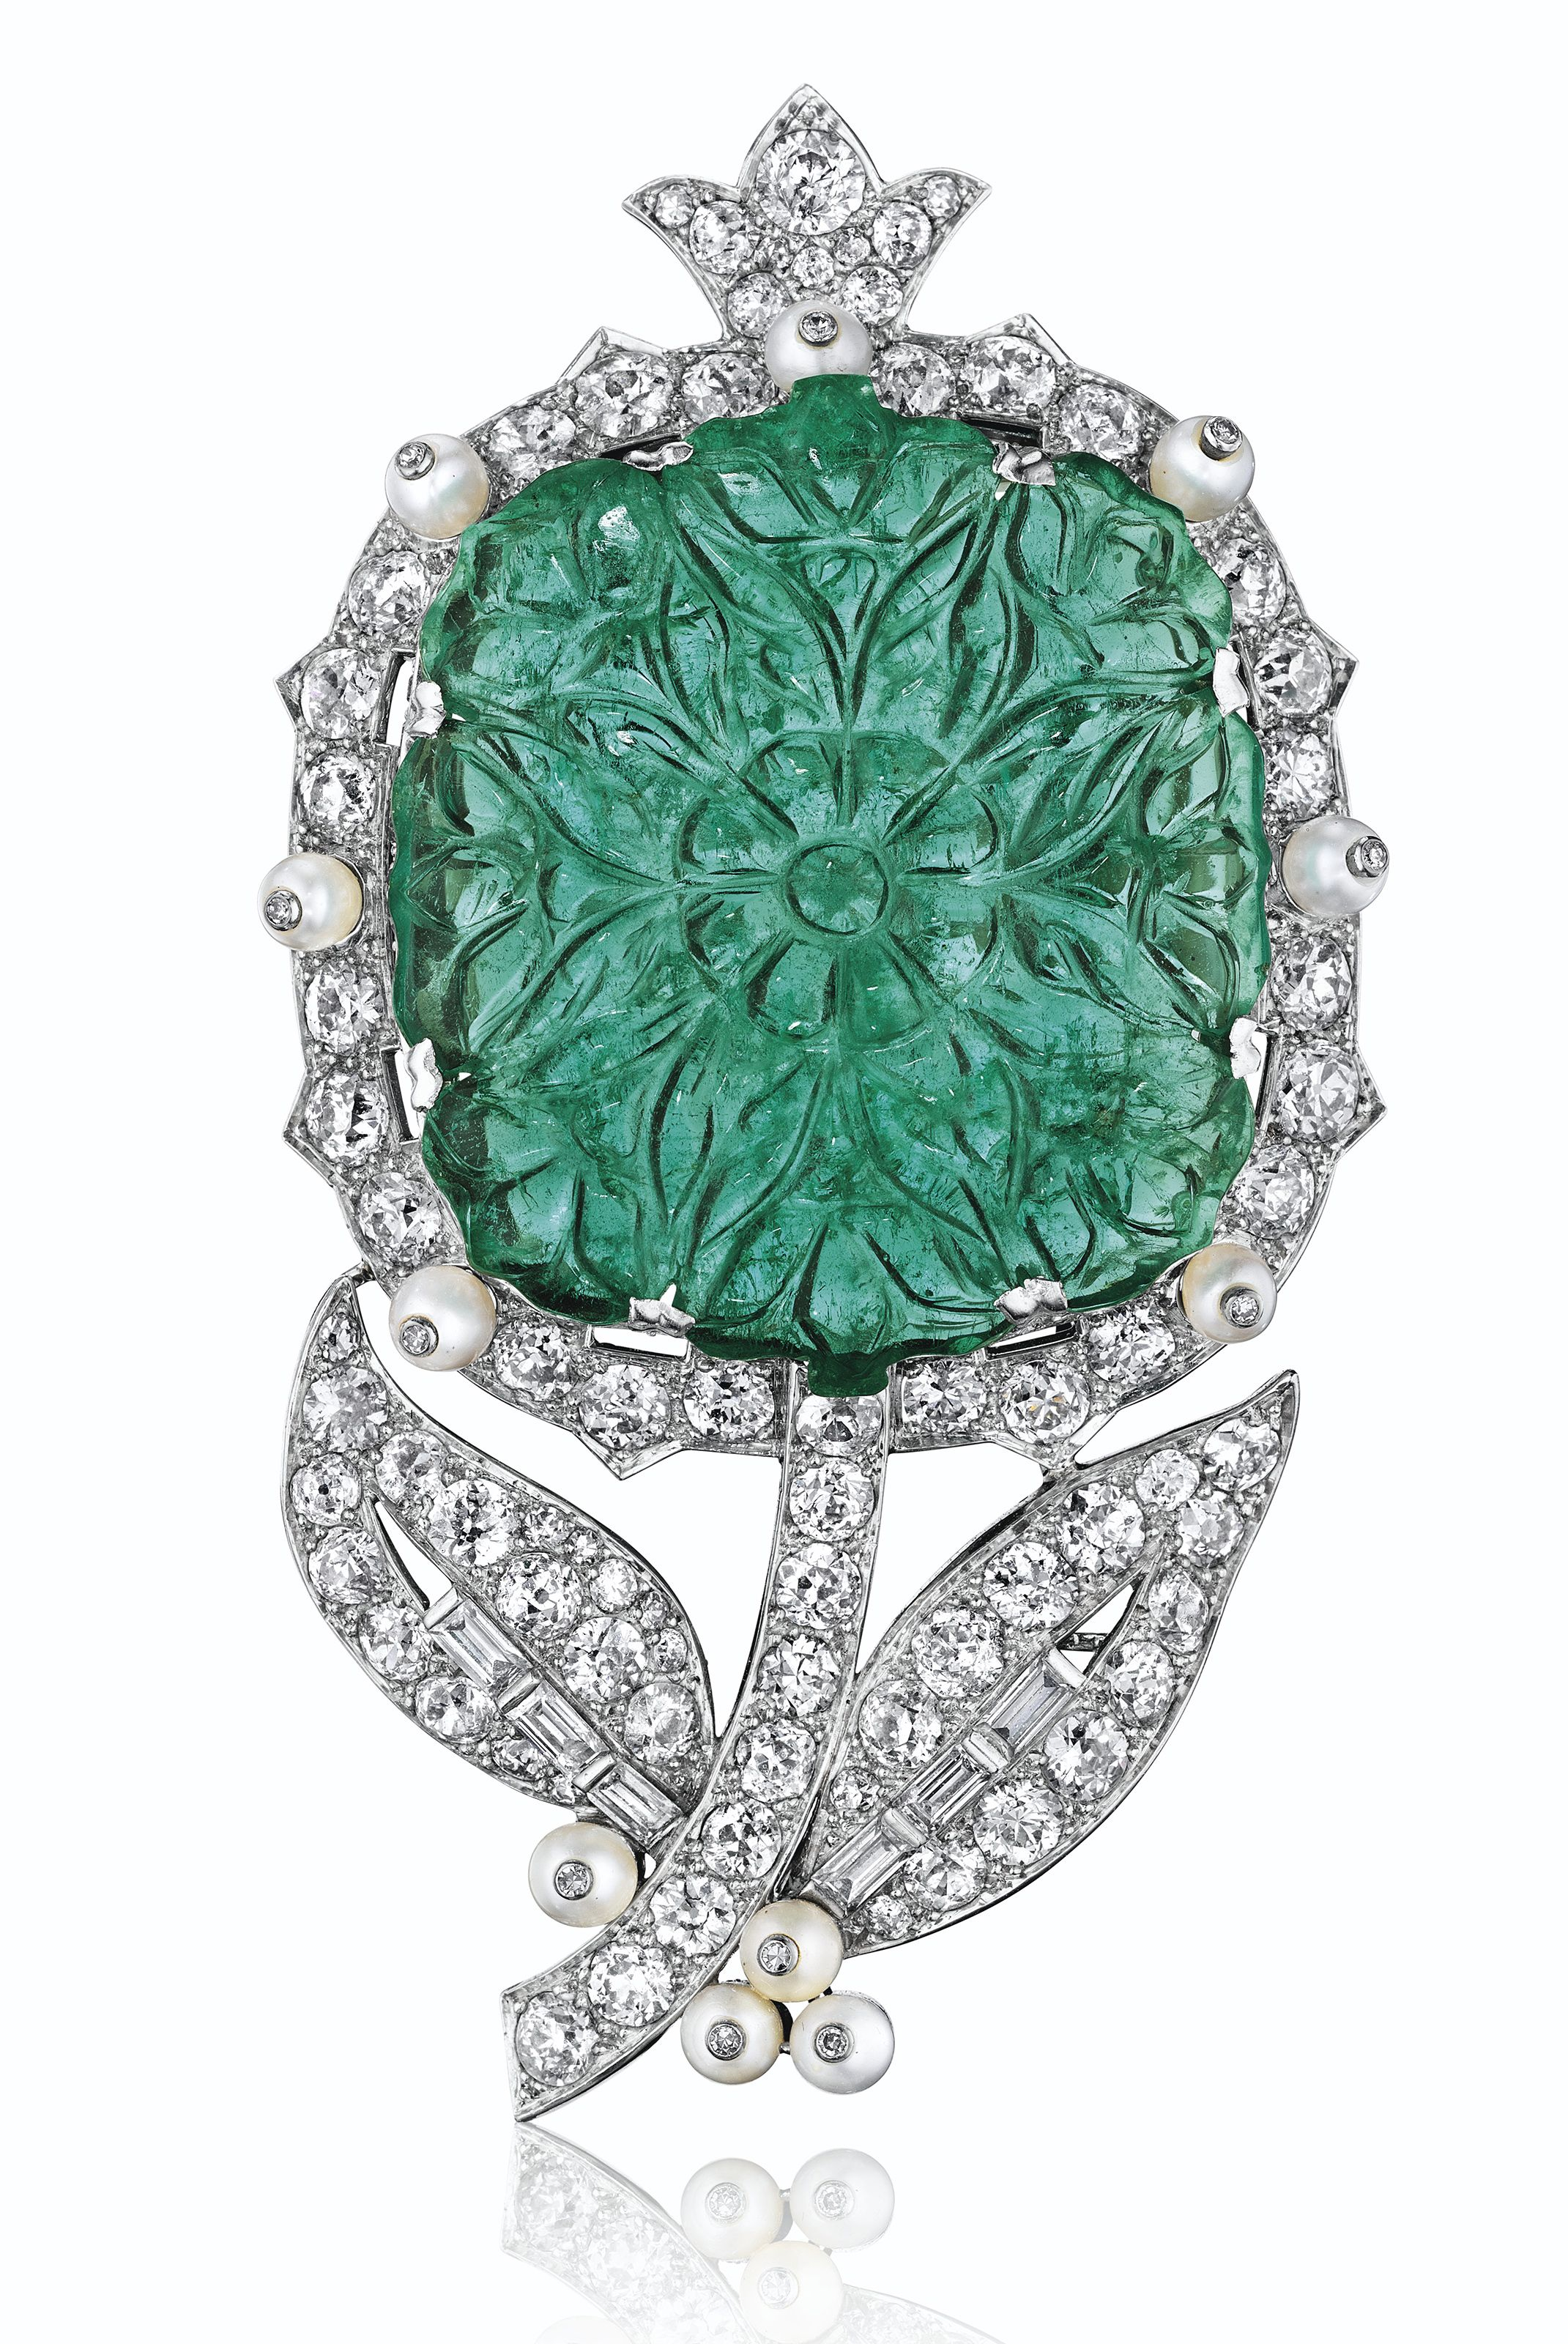 ring upscale cactus scale false subsampling emerald cartier the and crop shop img de carnelian product